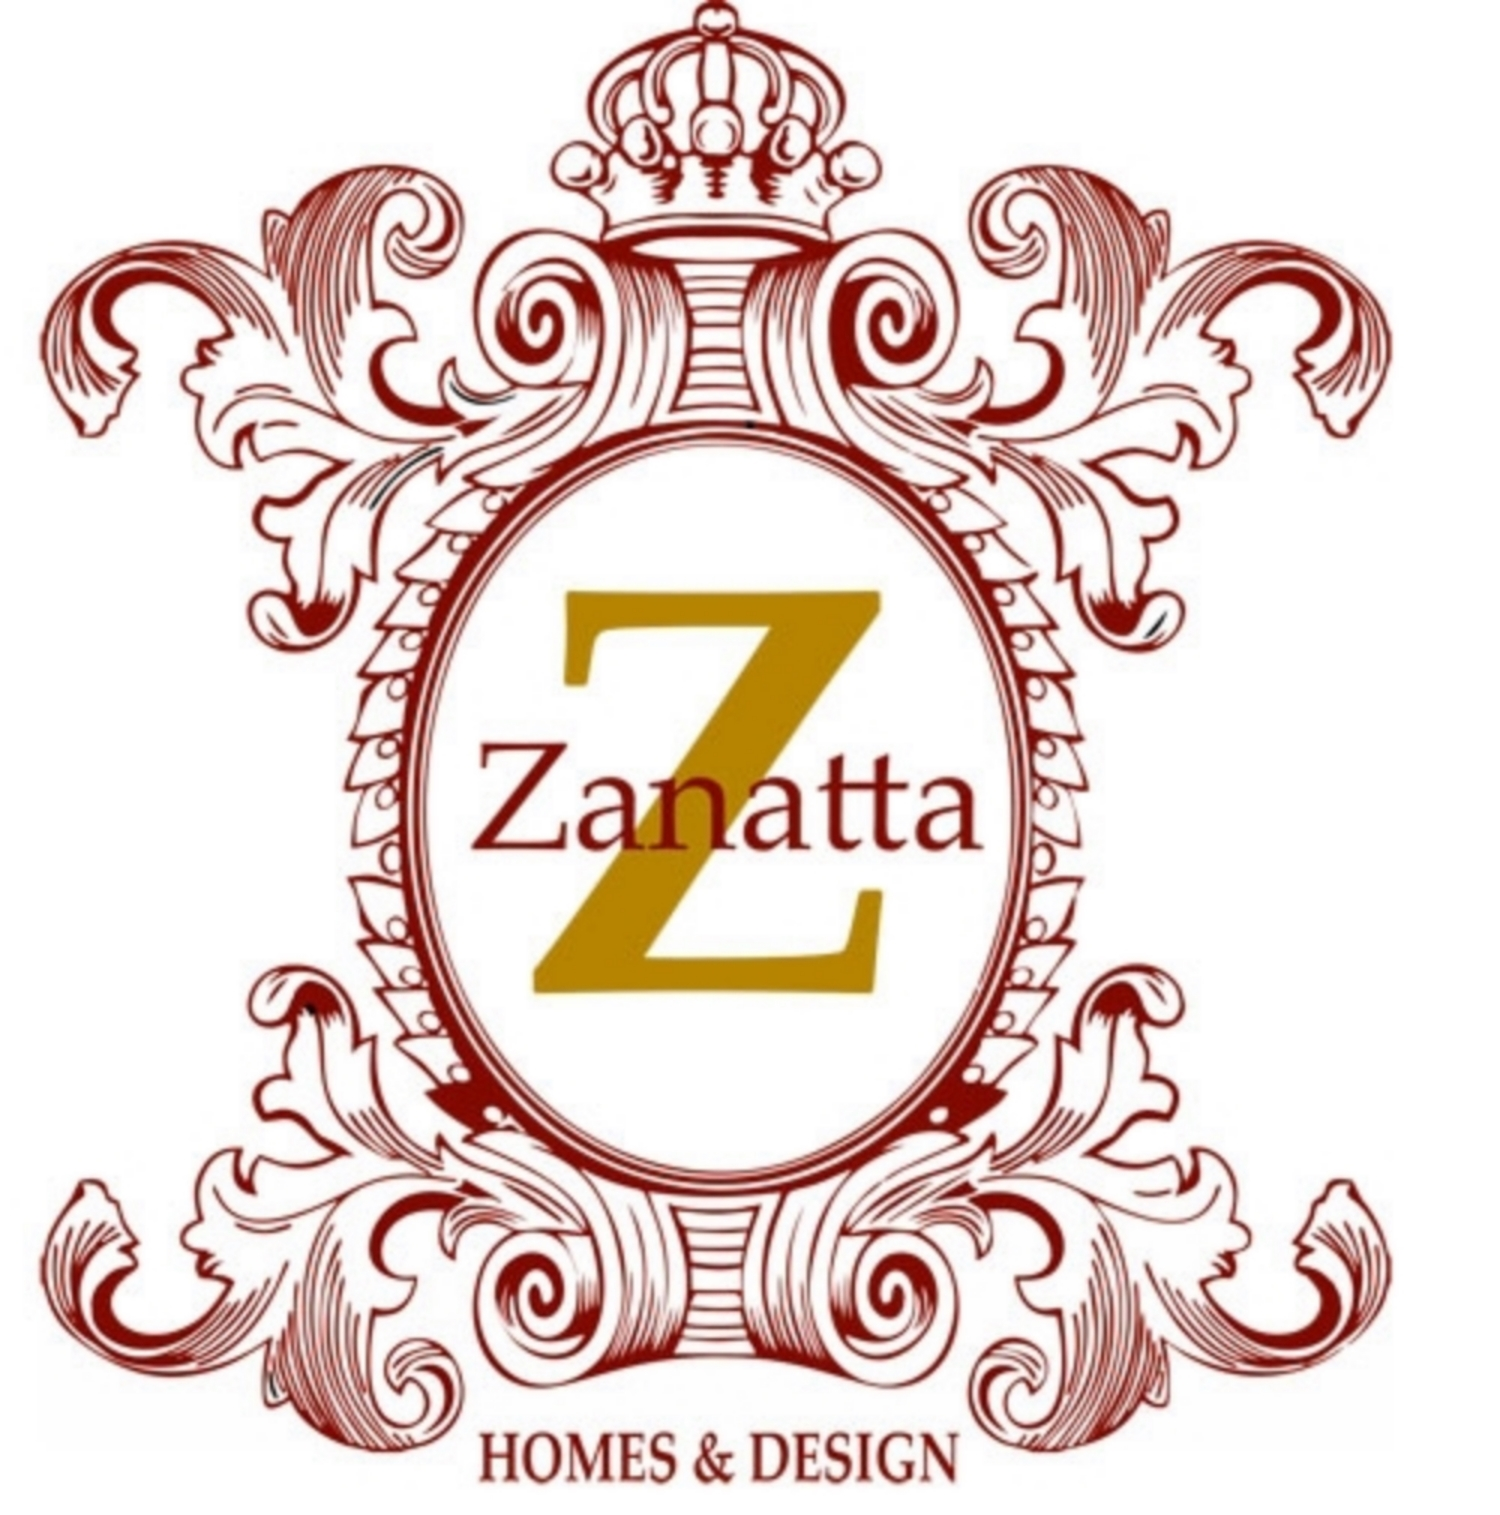 M. Zanatta Homes & Design